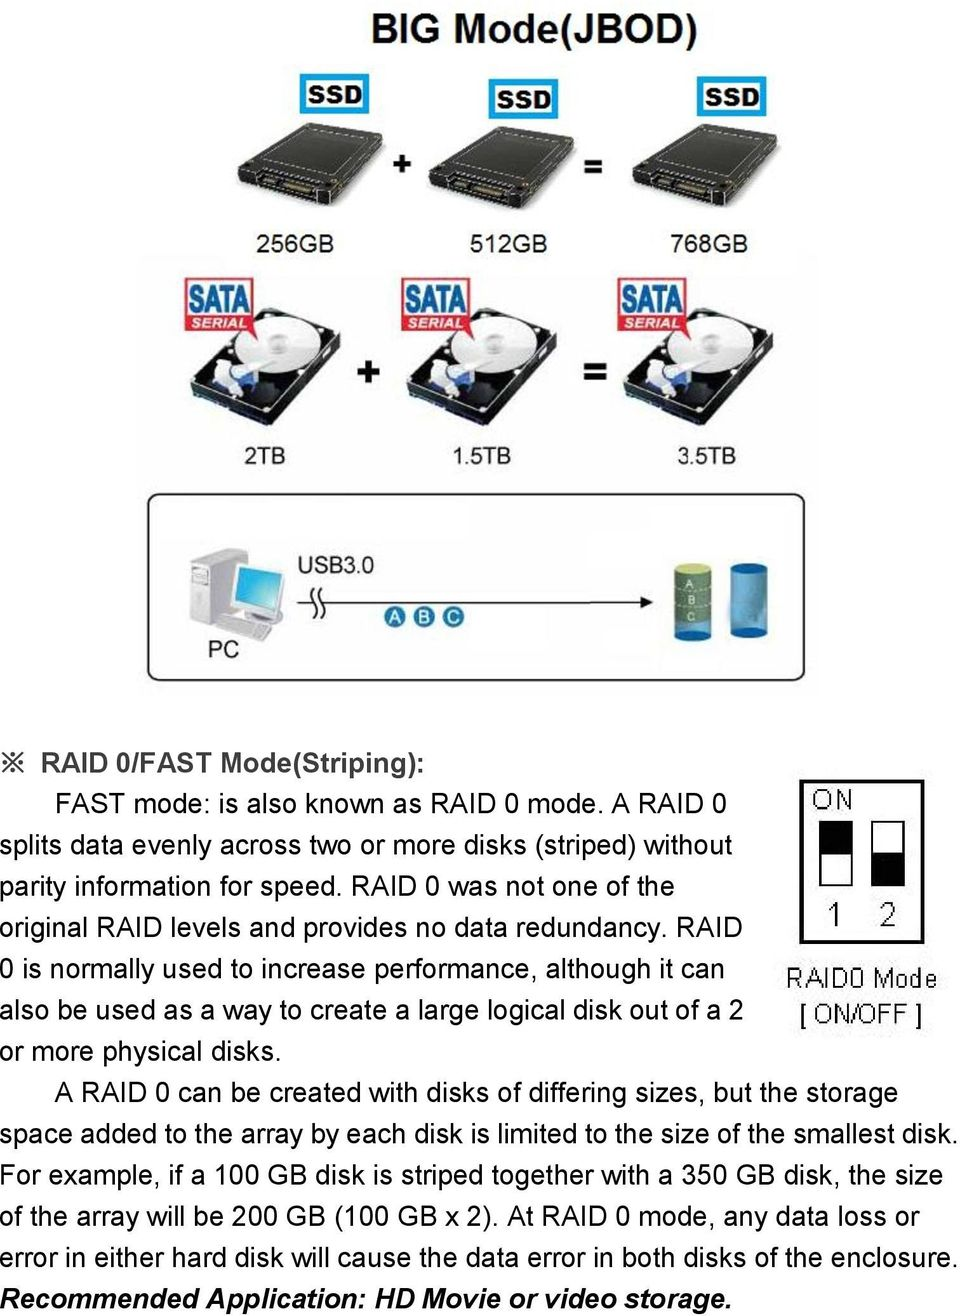 RAID 0 is normally used to increase performance, although it can also be used as a way to create a large logical disk out of a 2 or more physical disks.